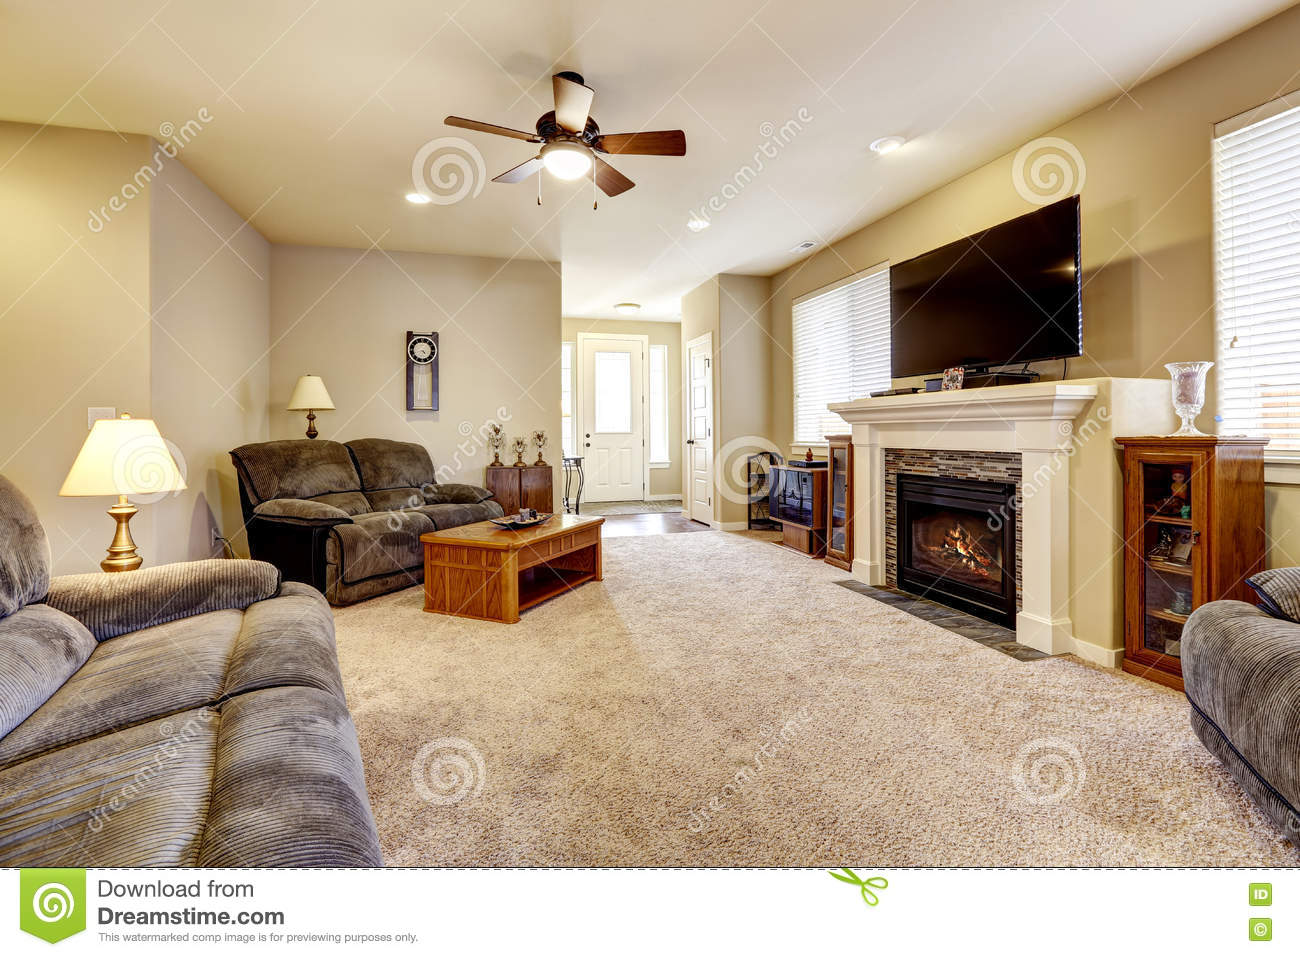 Living Room Interior In Classic American Style With Beige Walls Gray Sofa Set And Fireplace